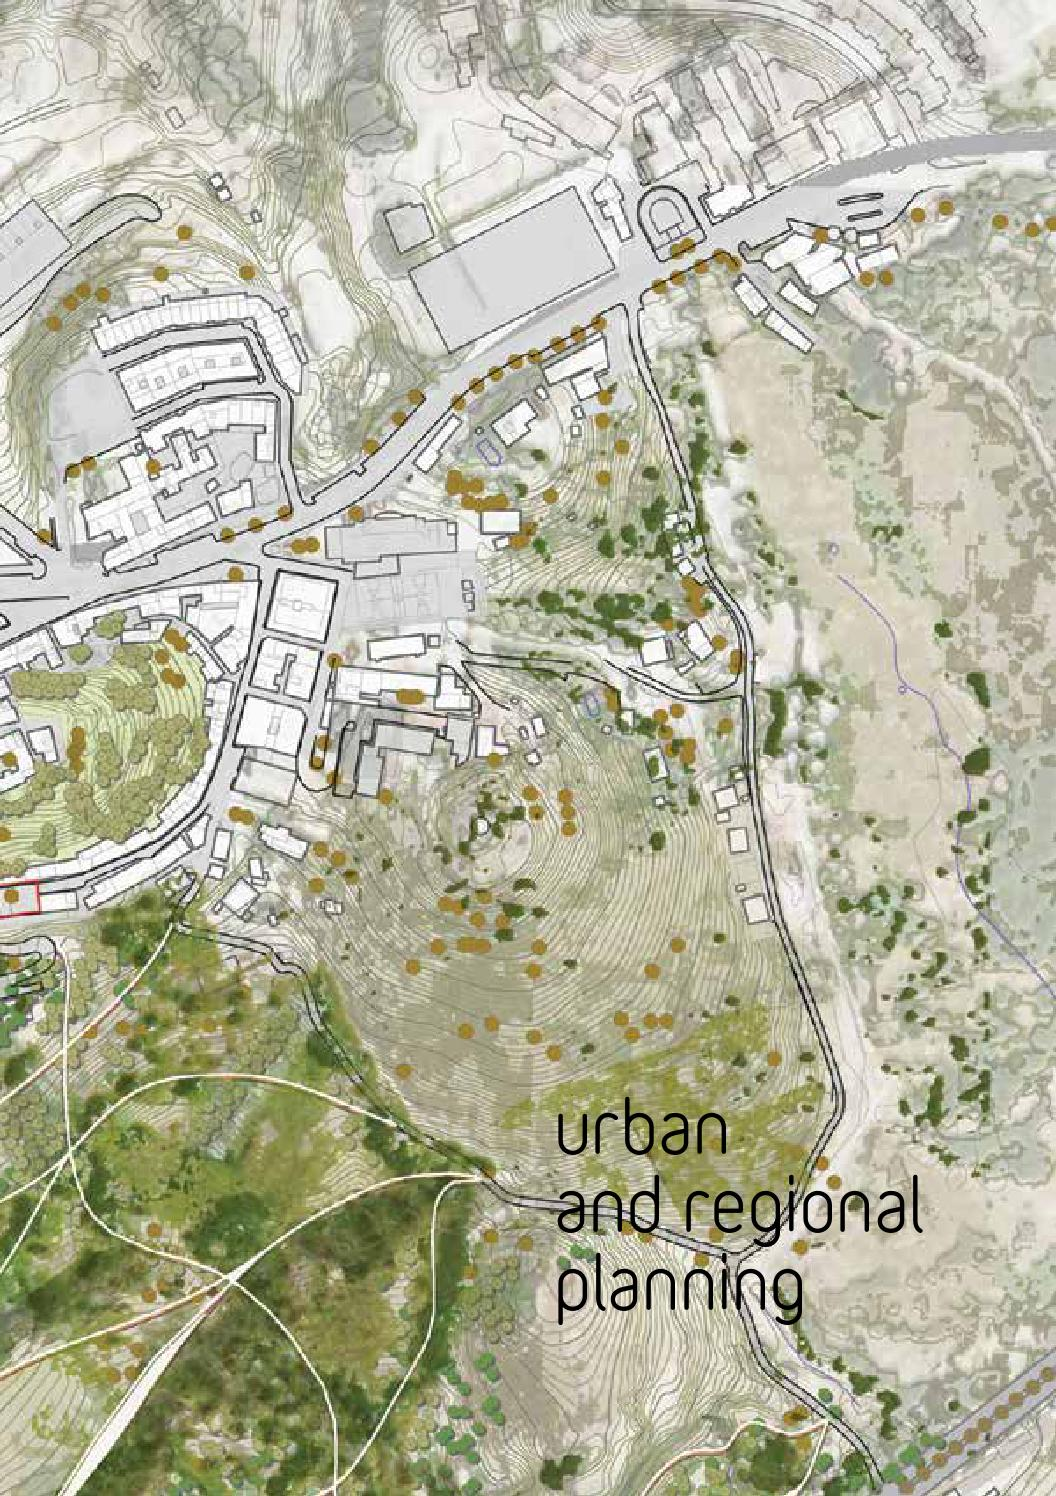 2014 Urban And Regional Planning By Taubman College Of Architecture And Urban Plannin Issuu